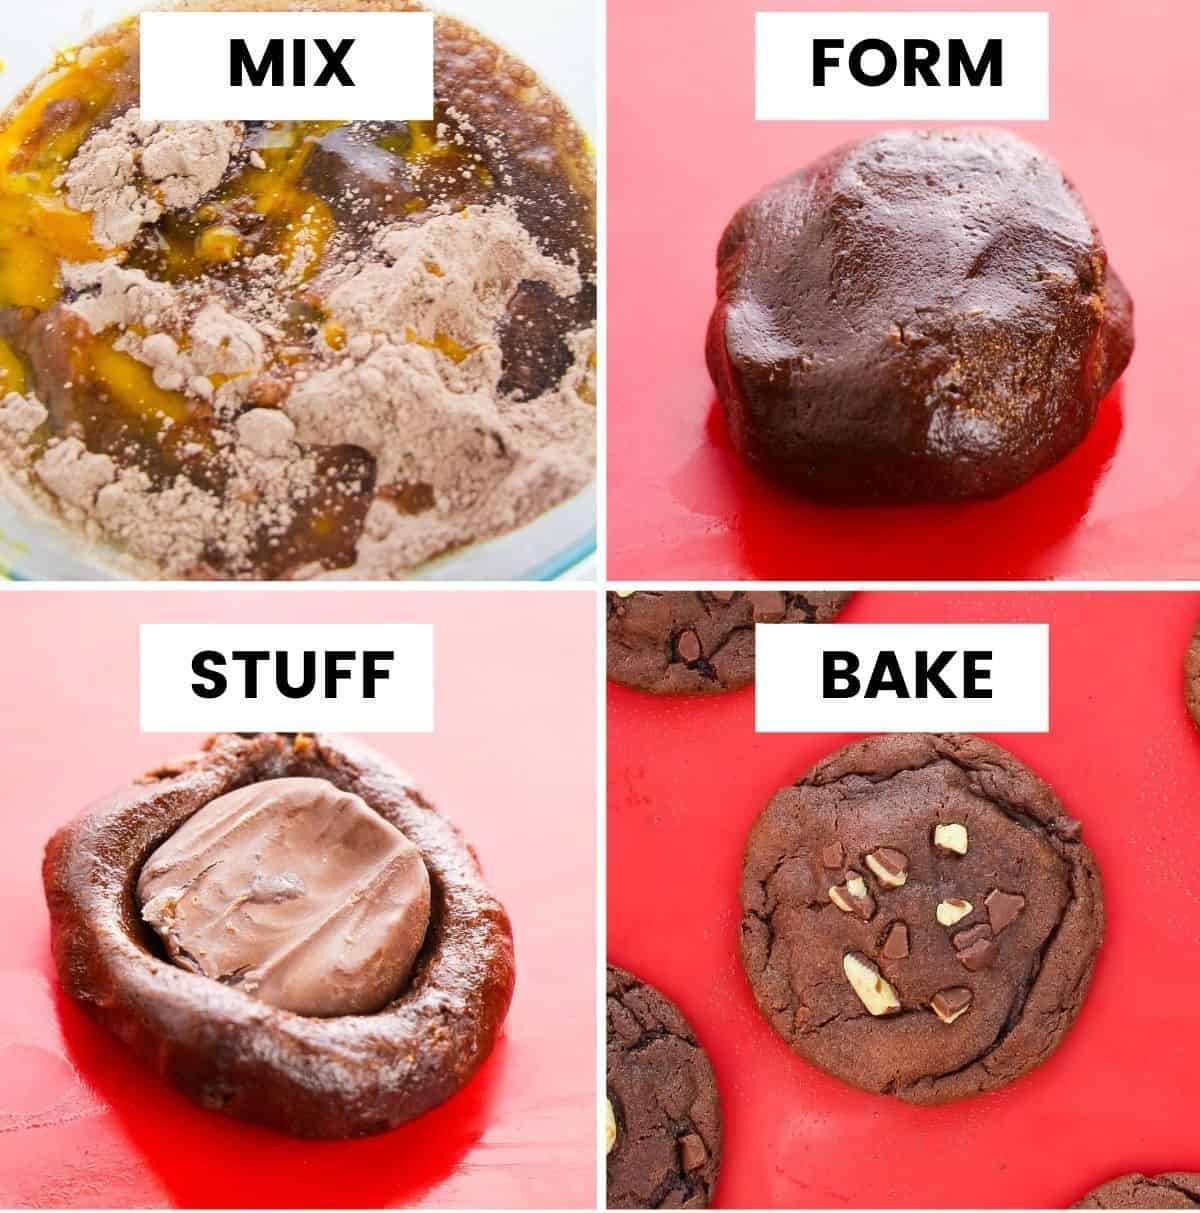 How to Make Peppermint Patty Stuffed Chocolate Cookies